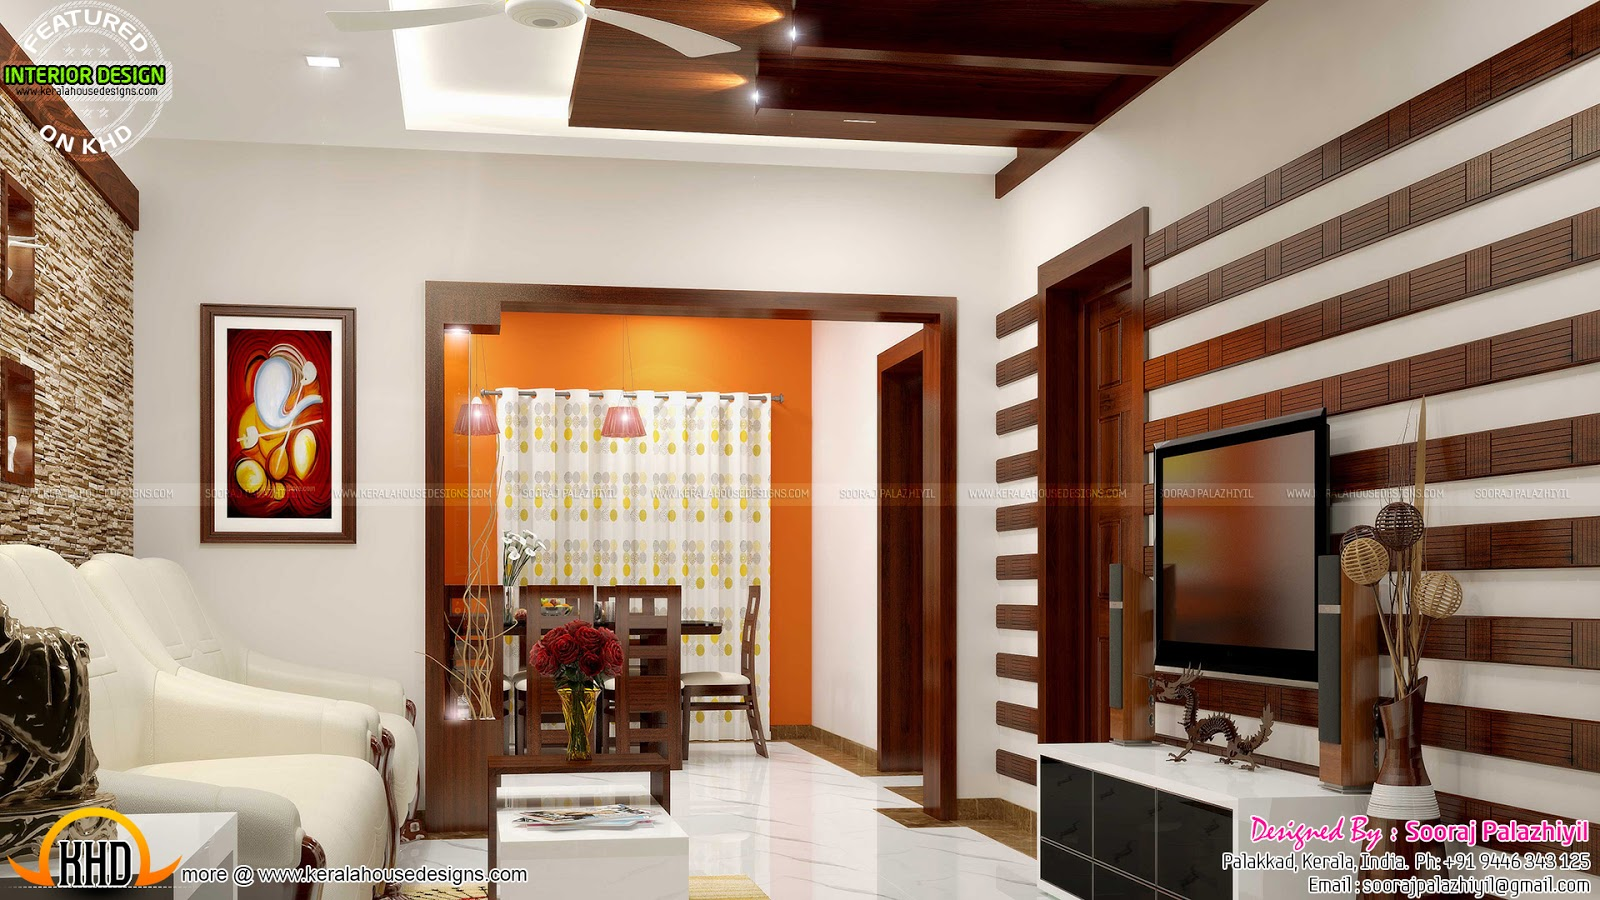 Interior design for apartments in kerala simple for Simple house design inside